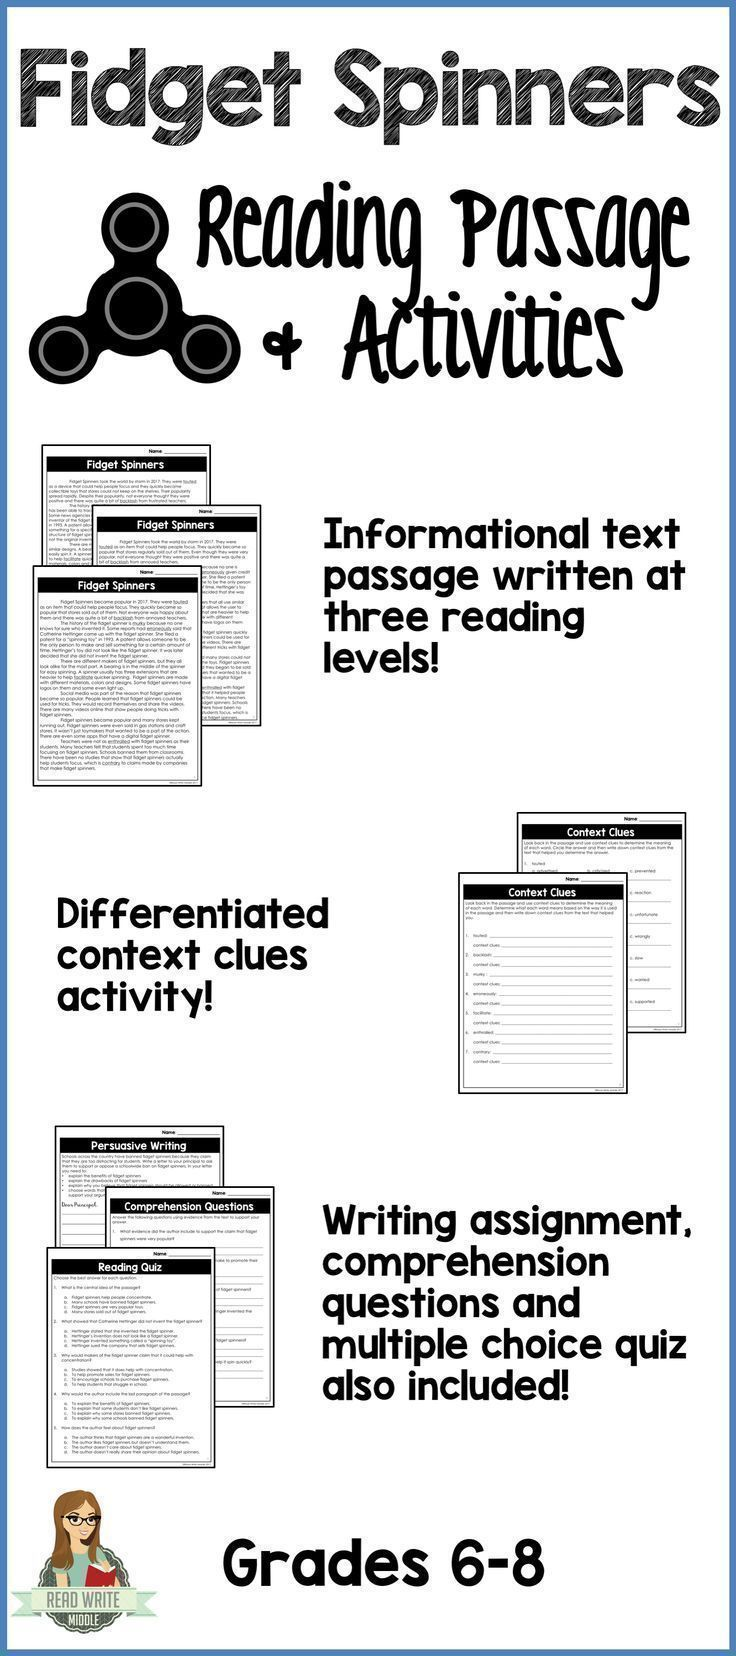 One page reading passage about fidget spinners written at three different reading levels. Great practice for informational text. Differentiated context clues activity. Writing assignment and comprehension questions.